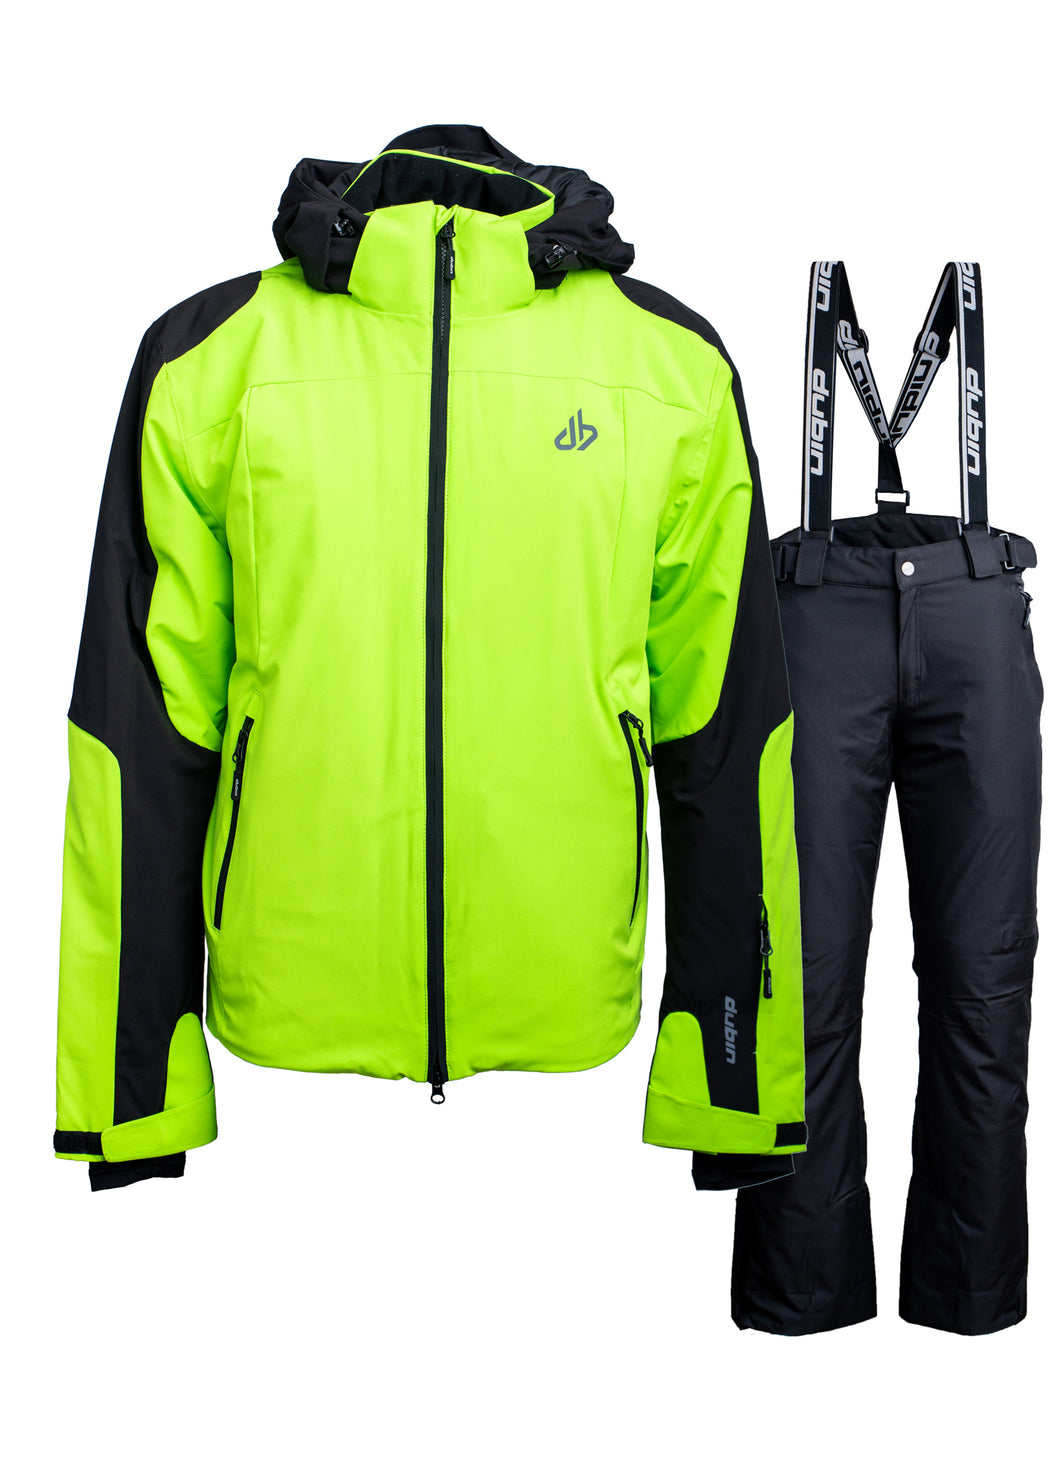 SET SCI ZERMATT 10K 3M THINSULATE - LIME/BLACK